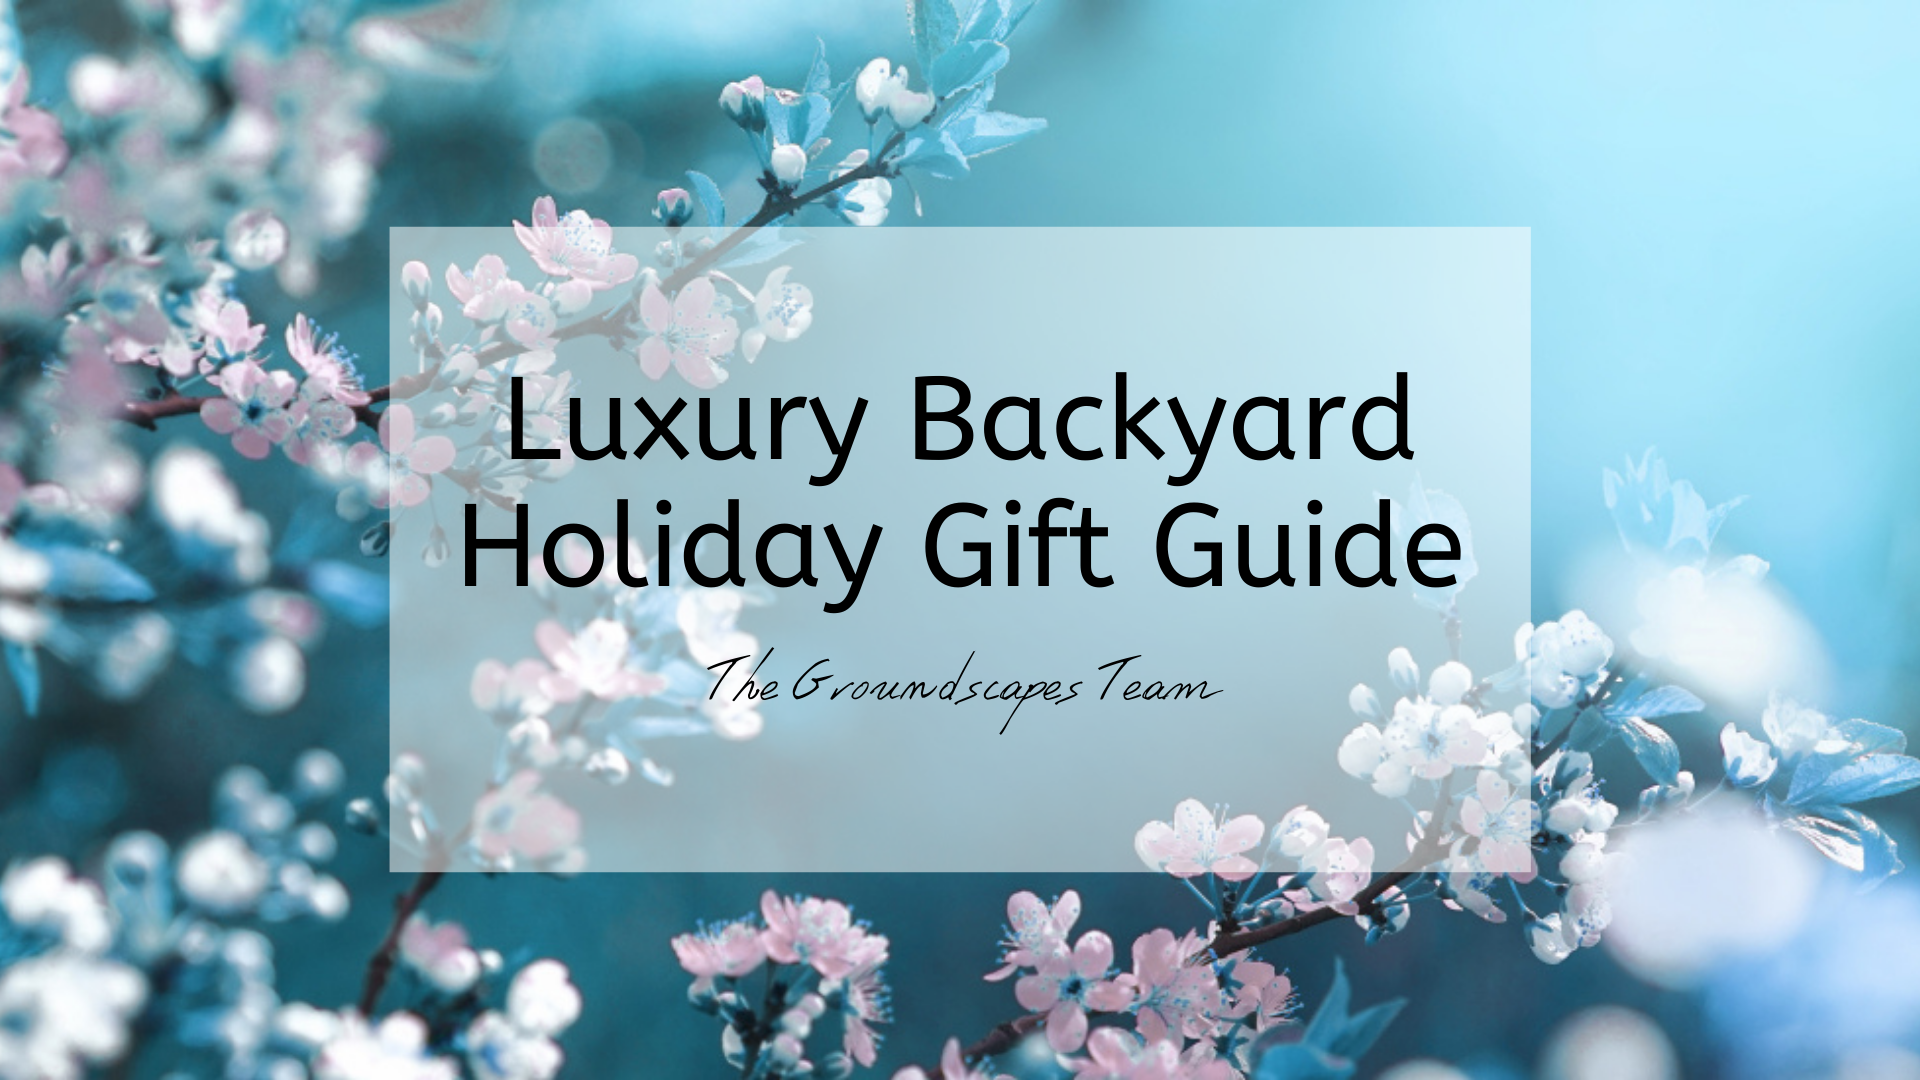 Luxury Backyard Holiday Gift Guide